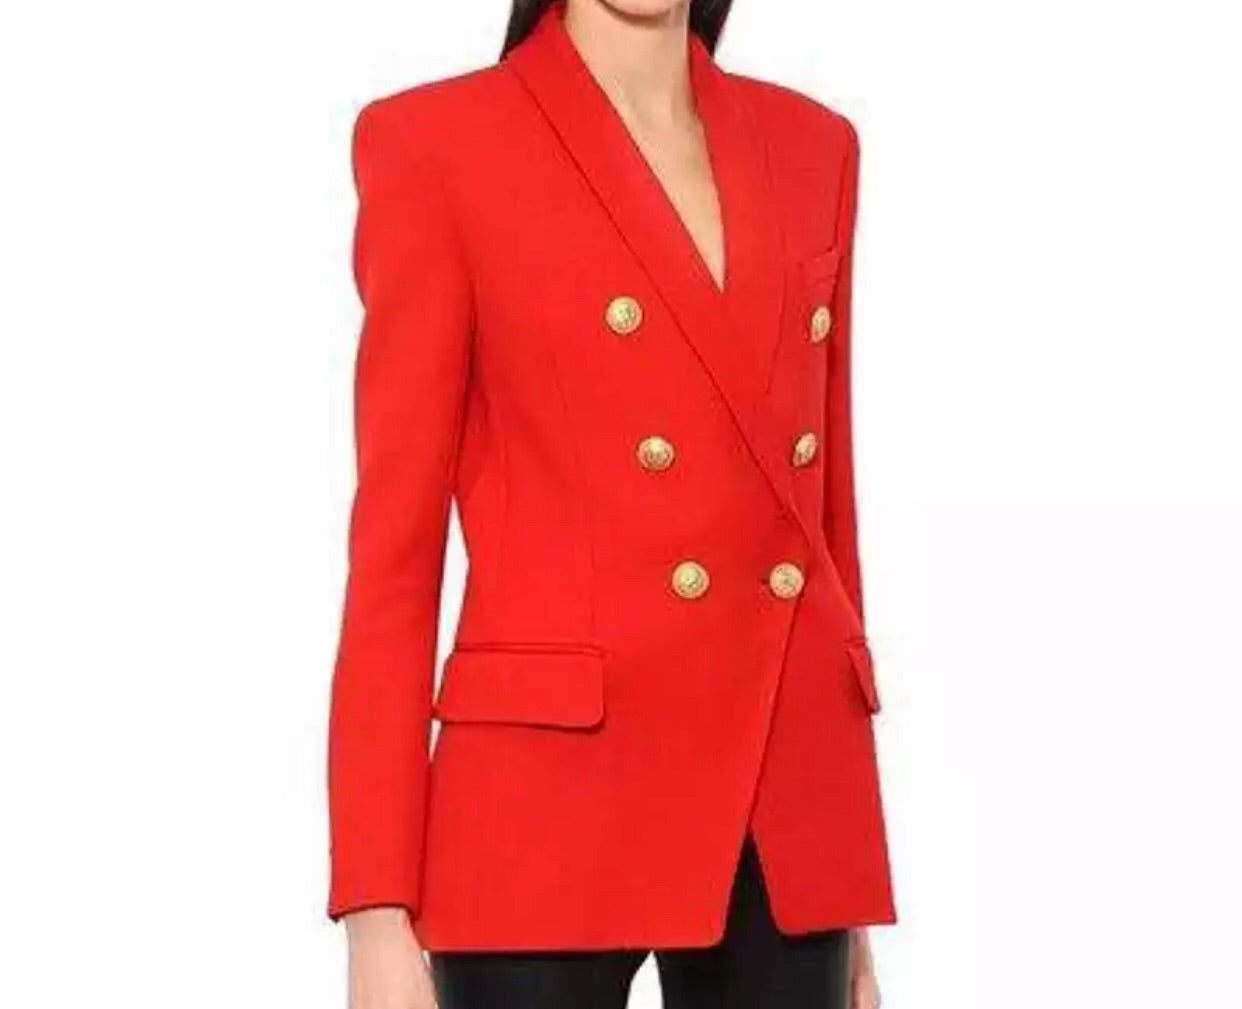 Long Length Double Breasted Blazer - Red